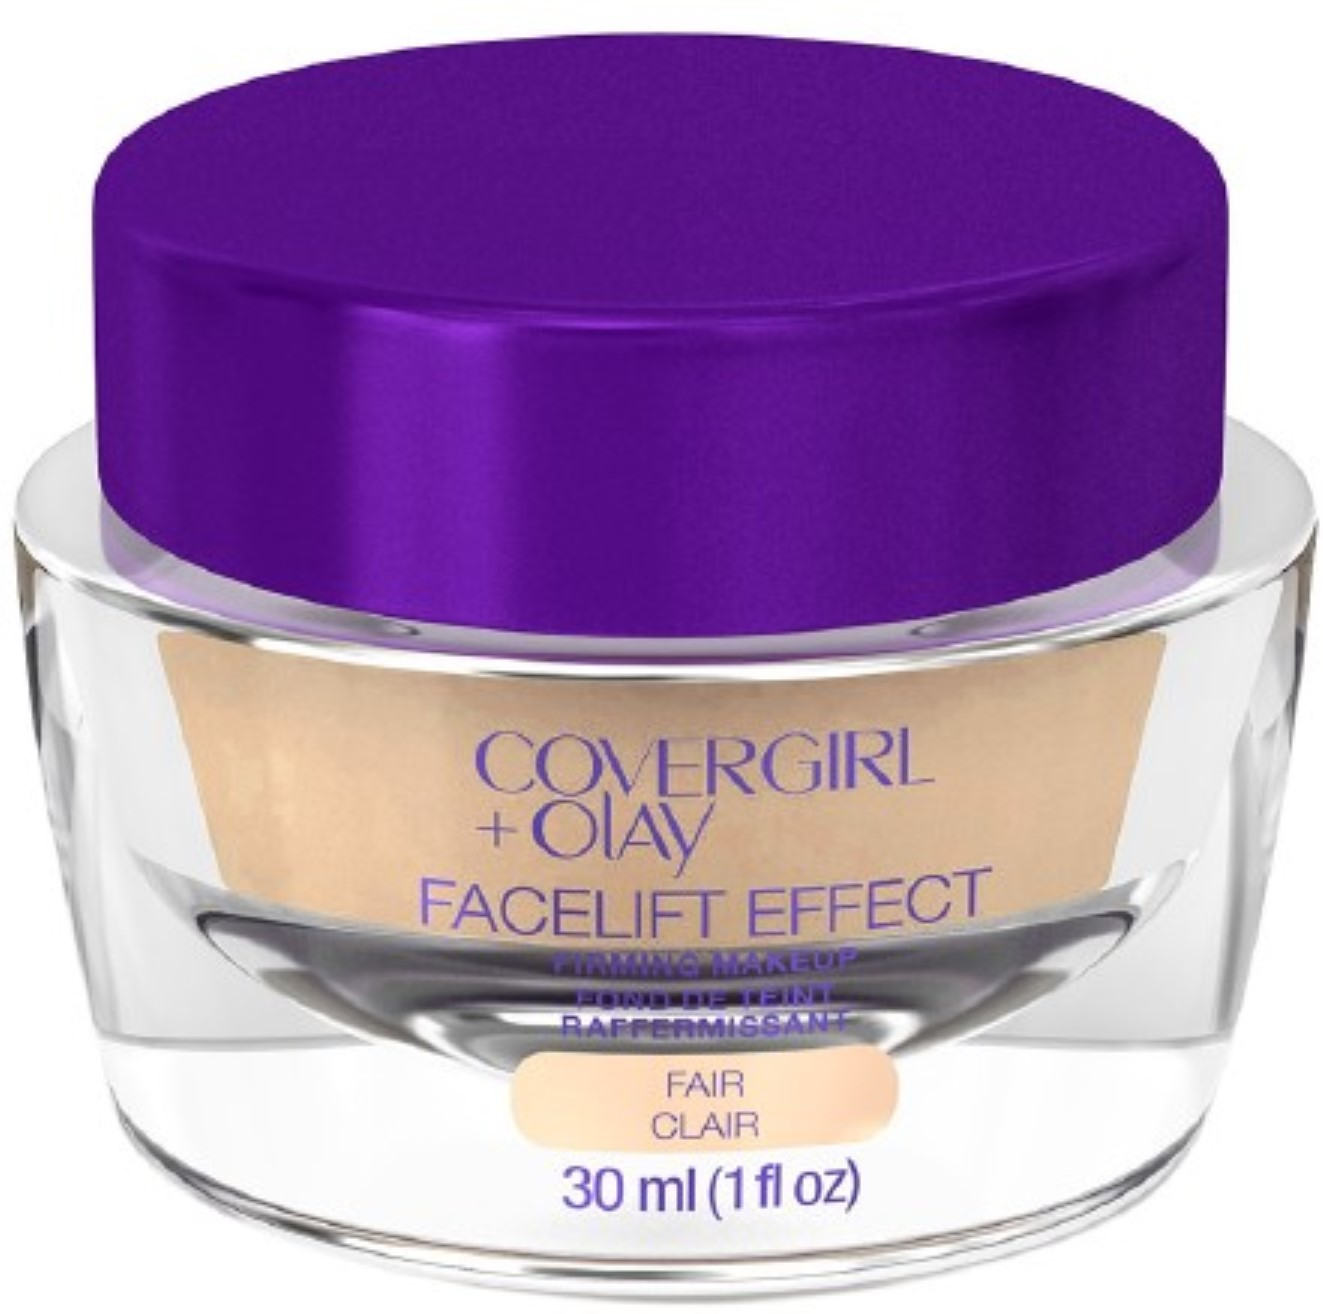 CoverGirl  & Olay FaceLift Effect Firming Makeup, Fair [310] 1 oz